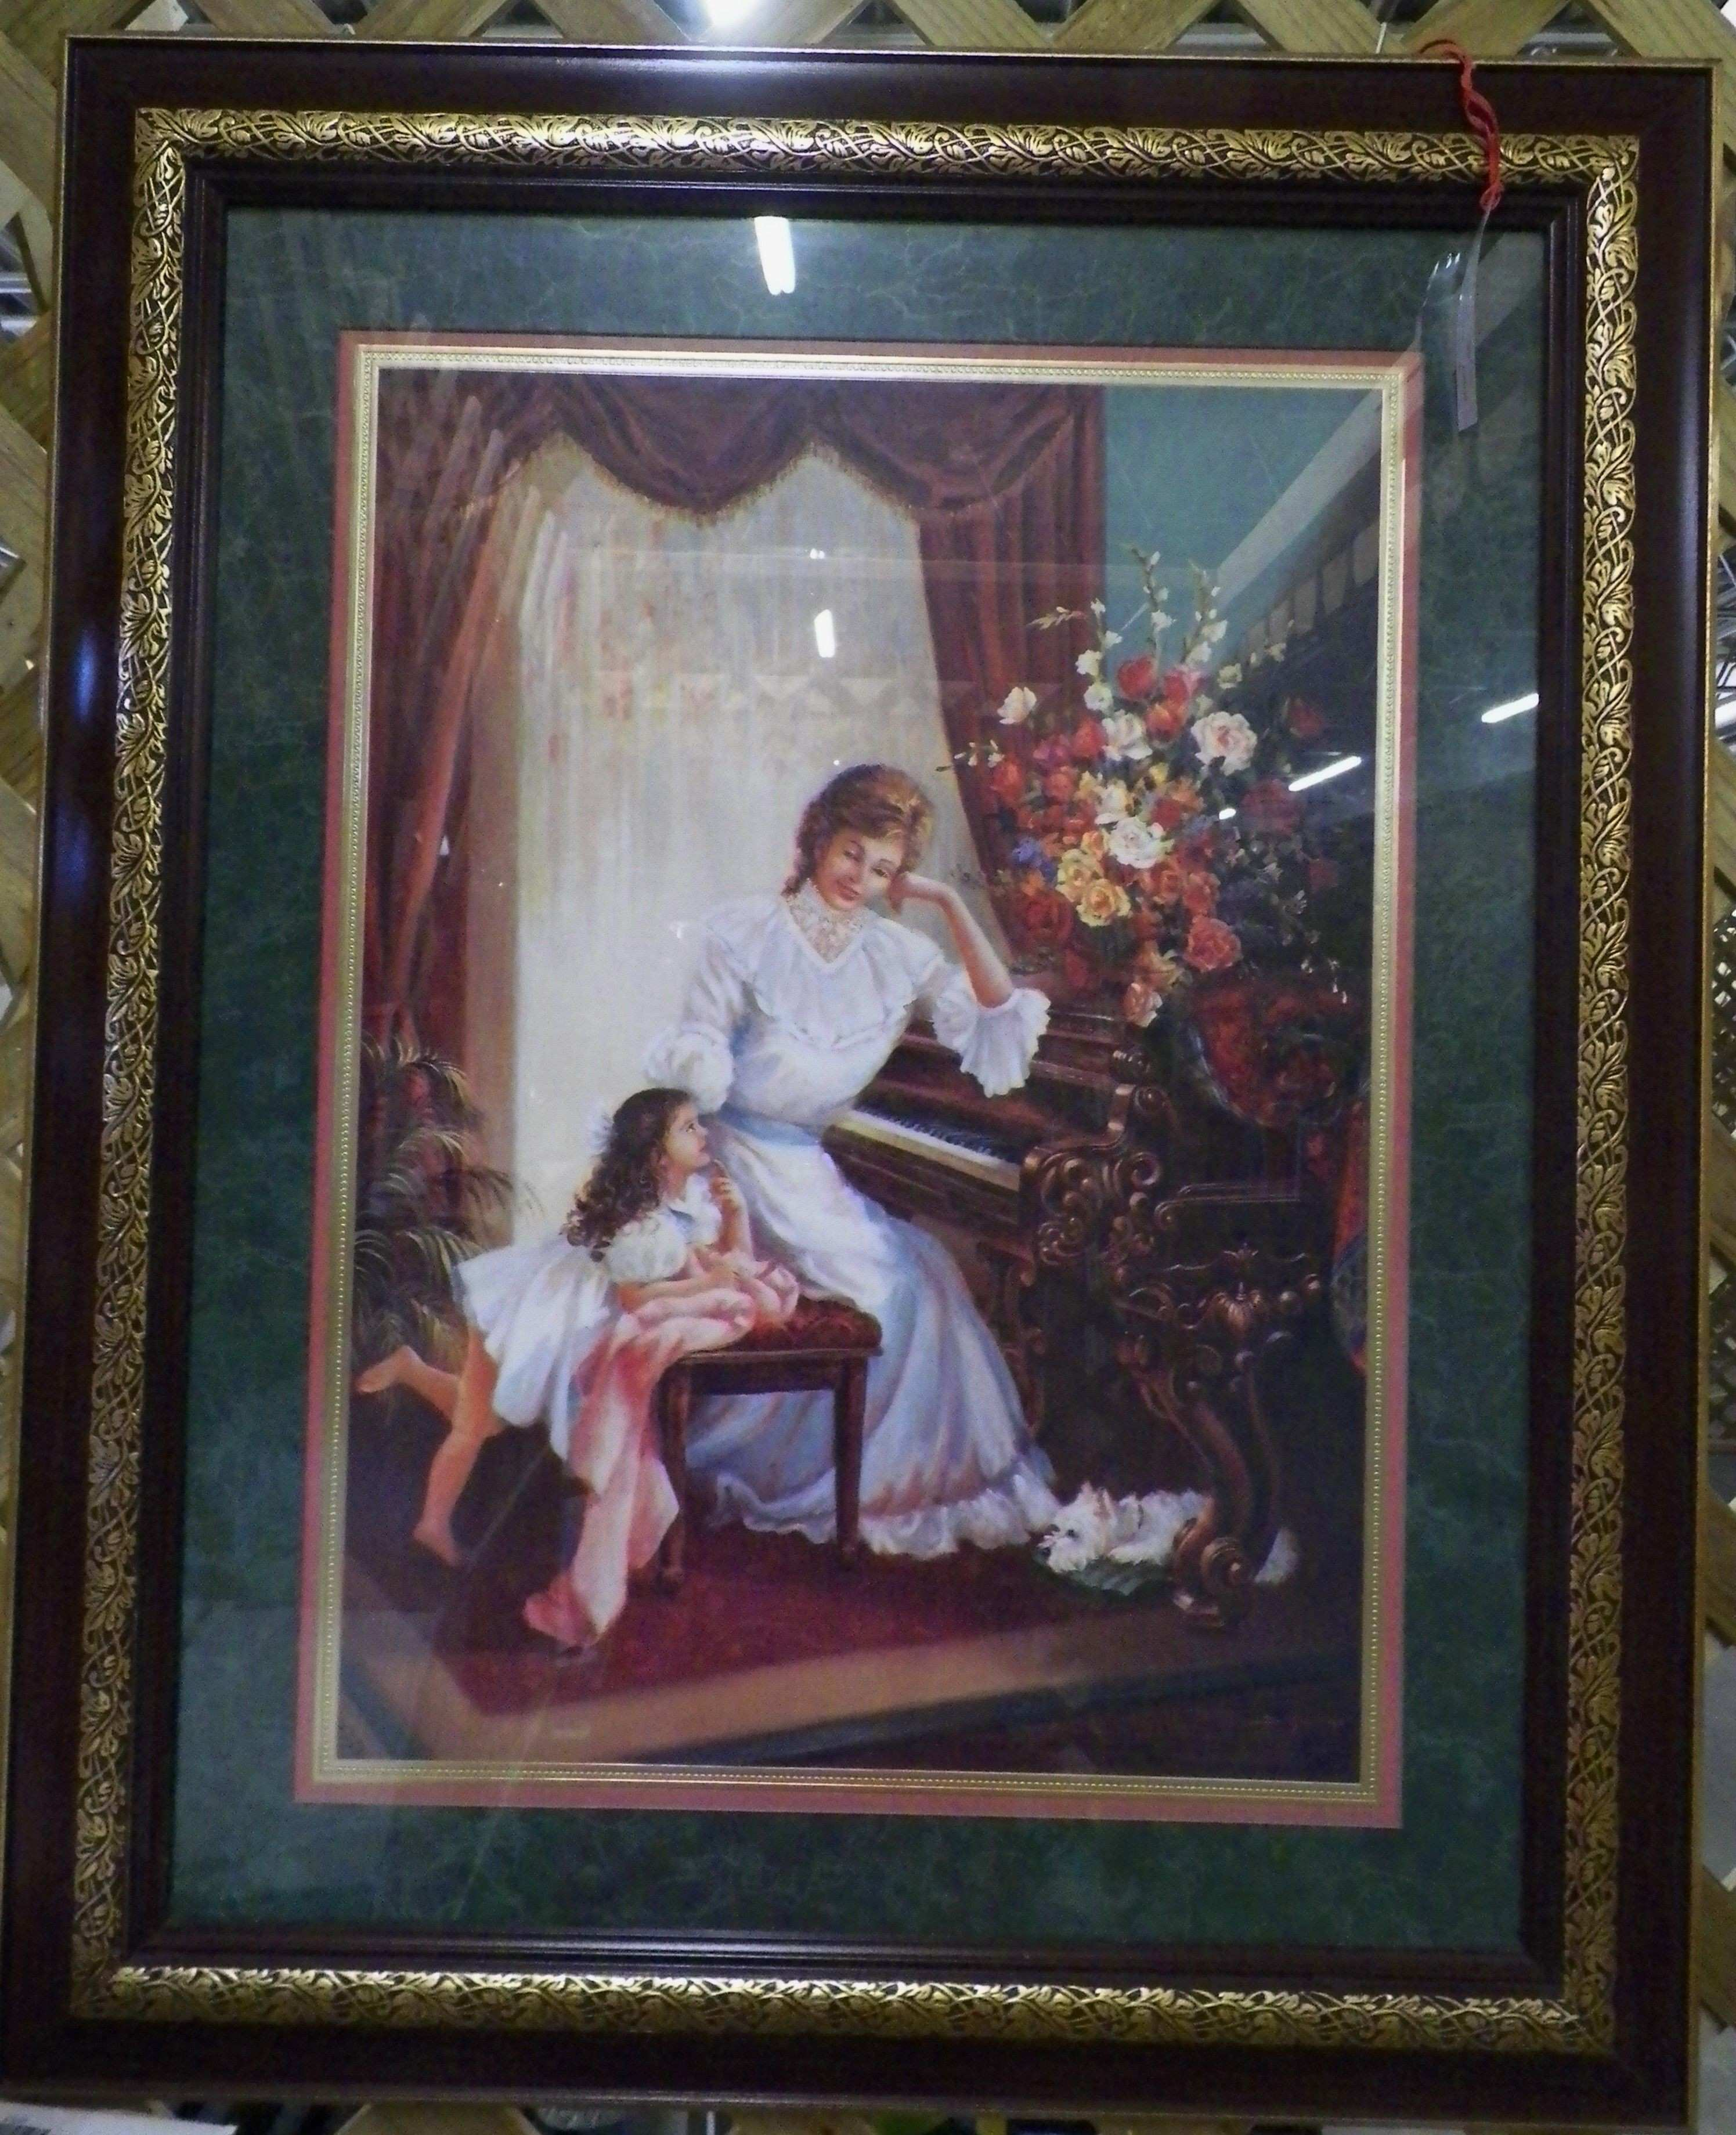 Home Interiors and Gifts Framed Art Luxury Like New Home Interior